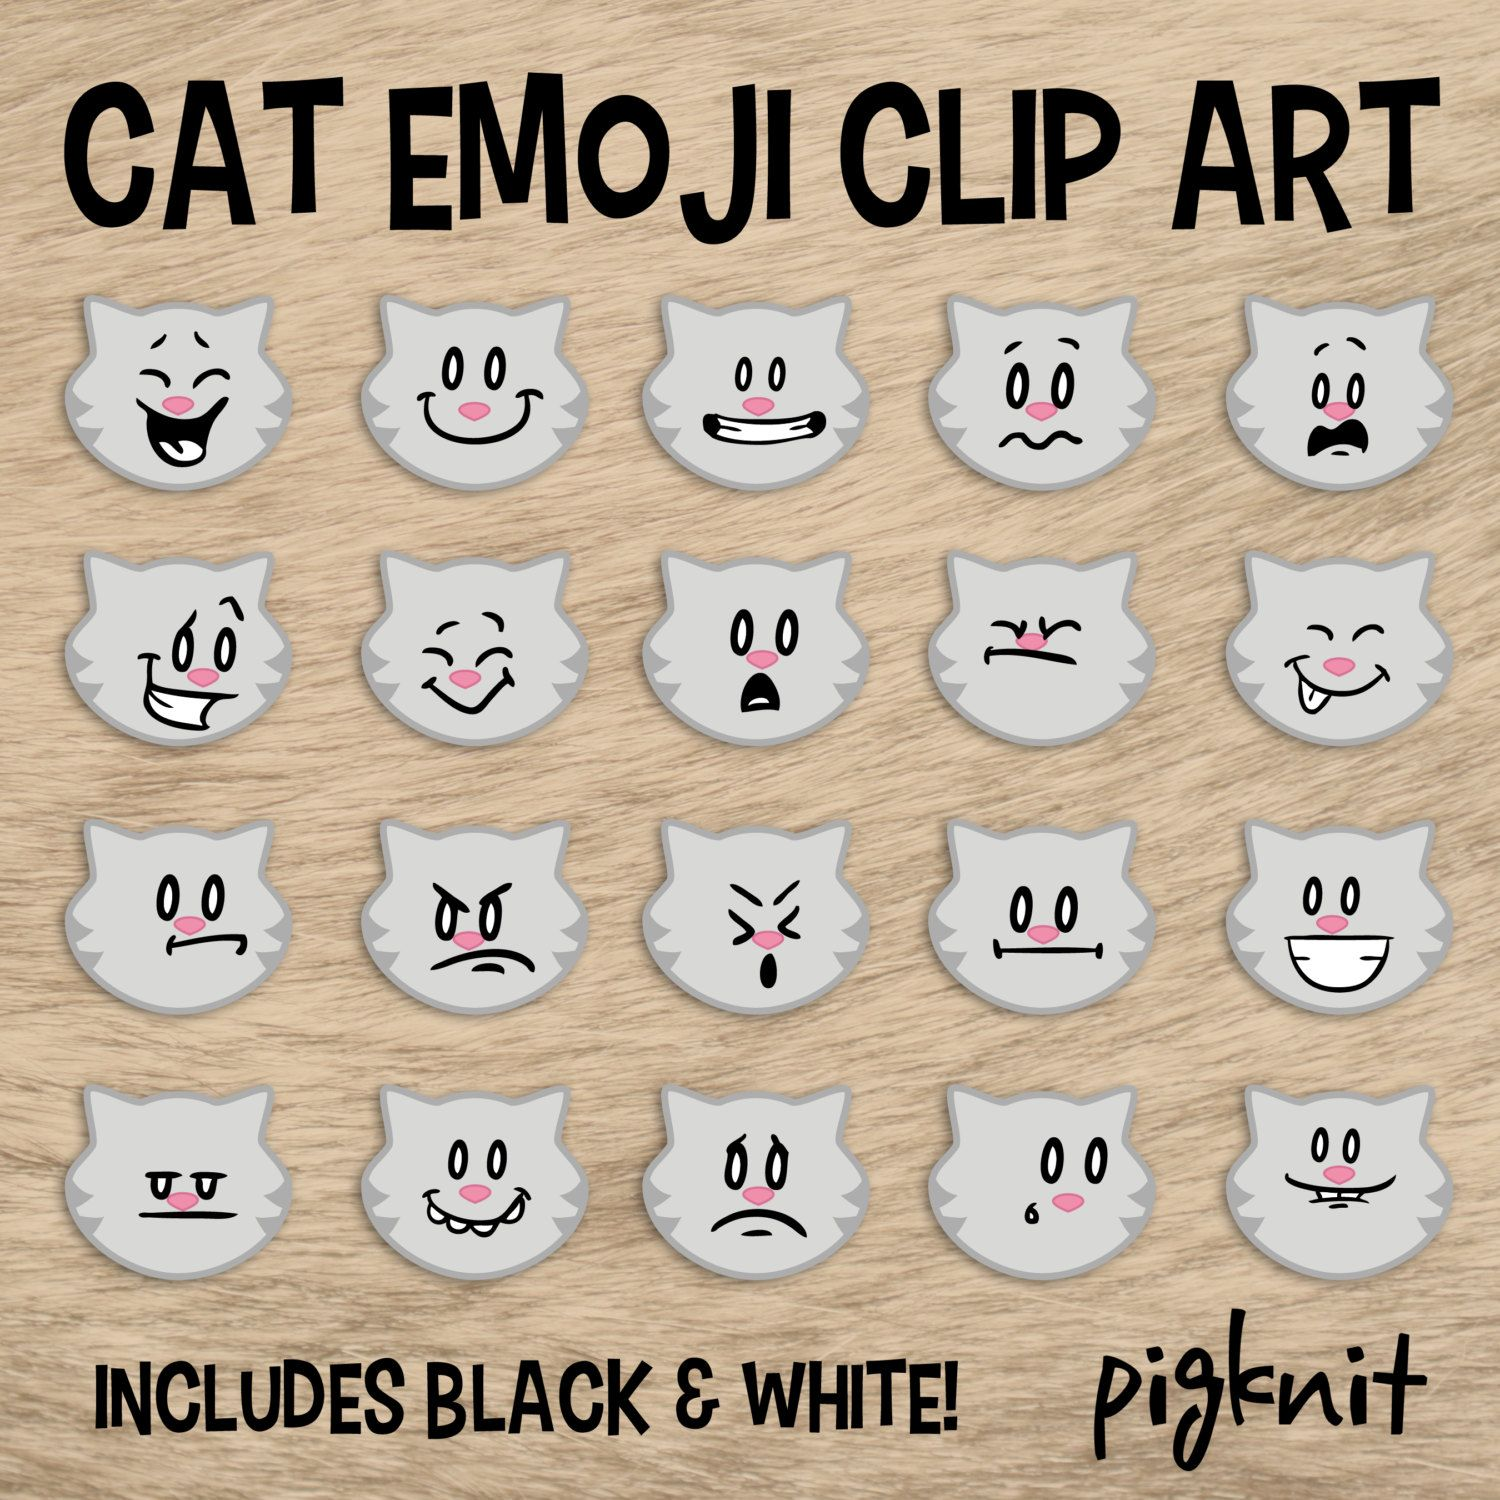 Cat Emoji Clip Art Kitty Clip Art Facial Expressions Smiley Face